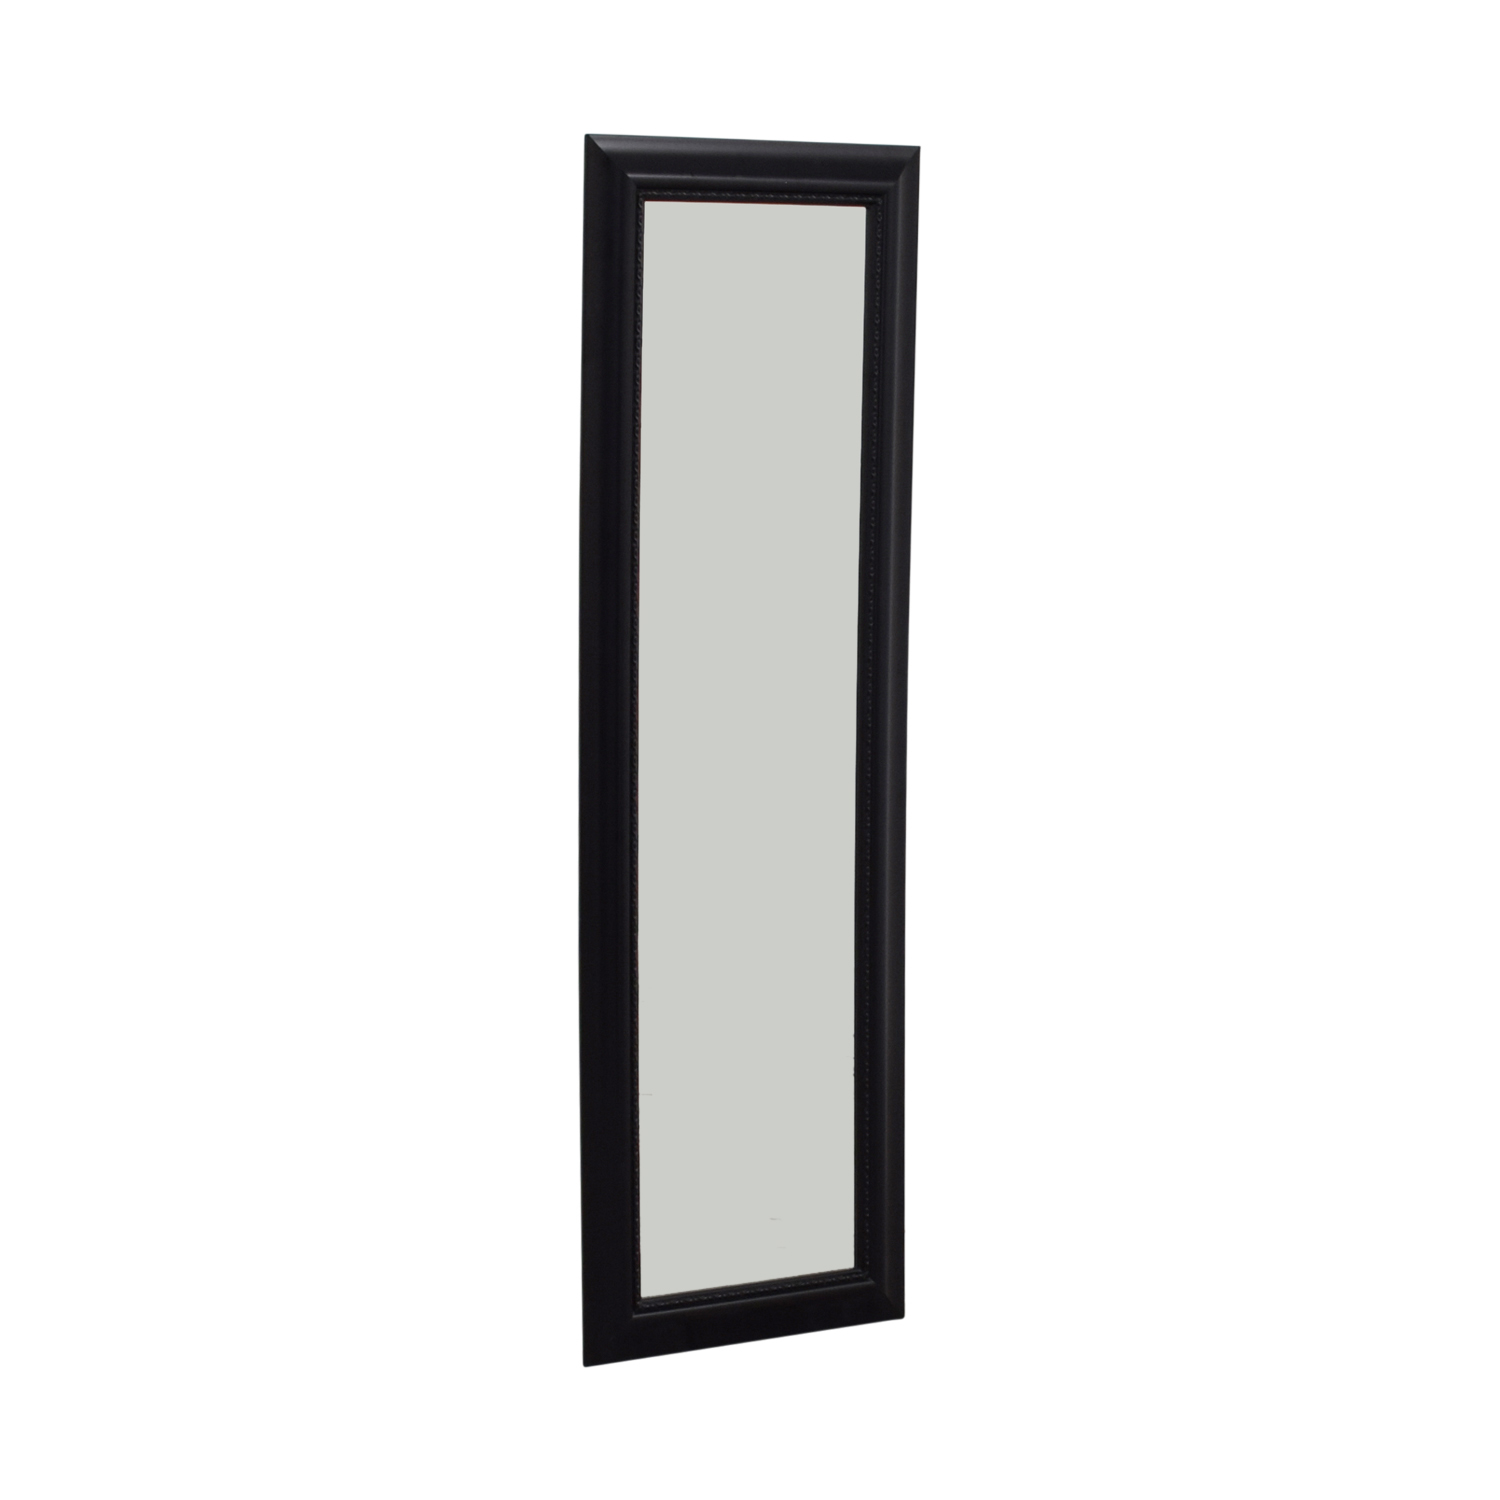 Black Framed Hanging Door Mirror on sale